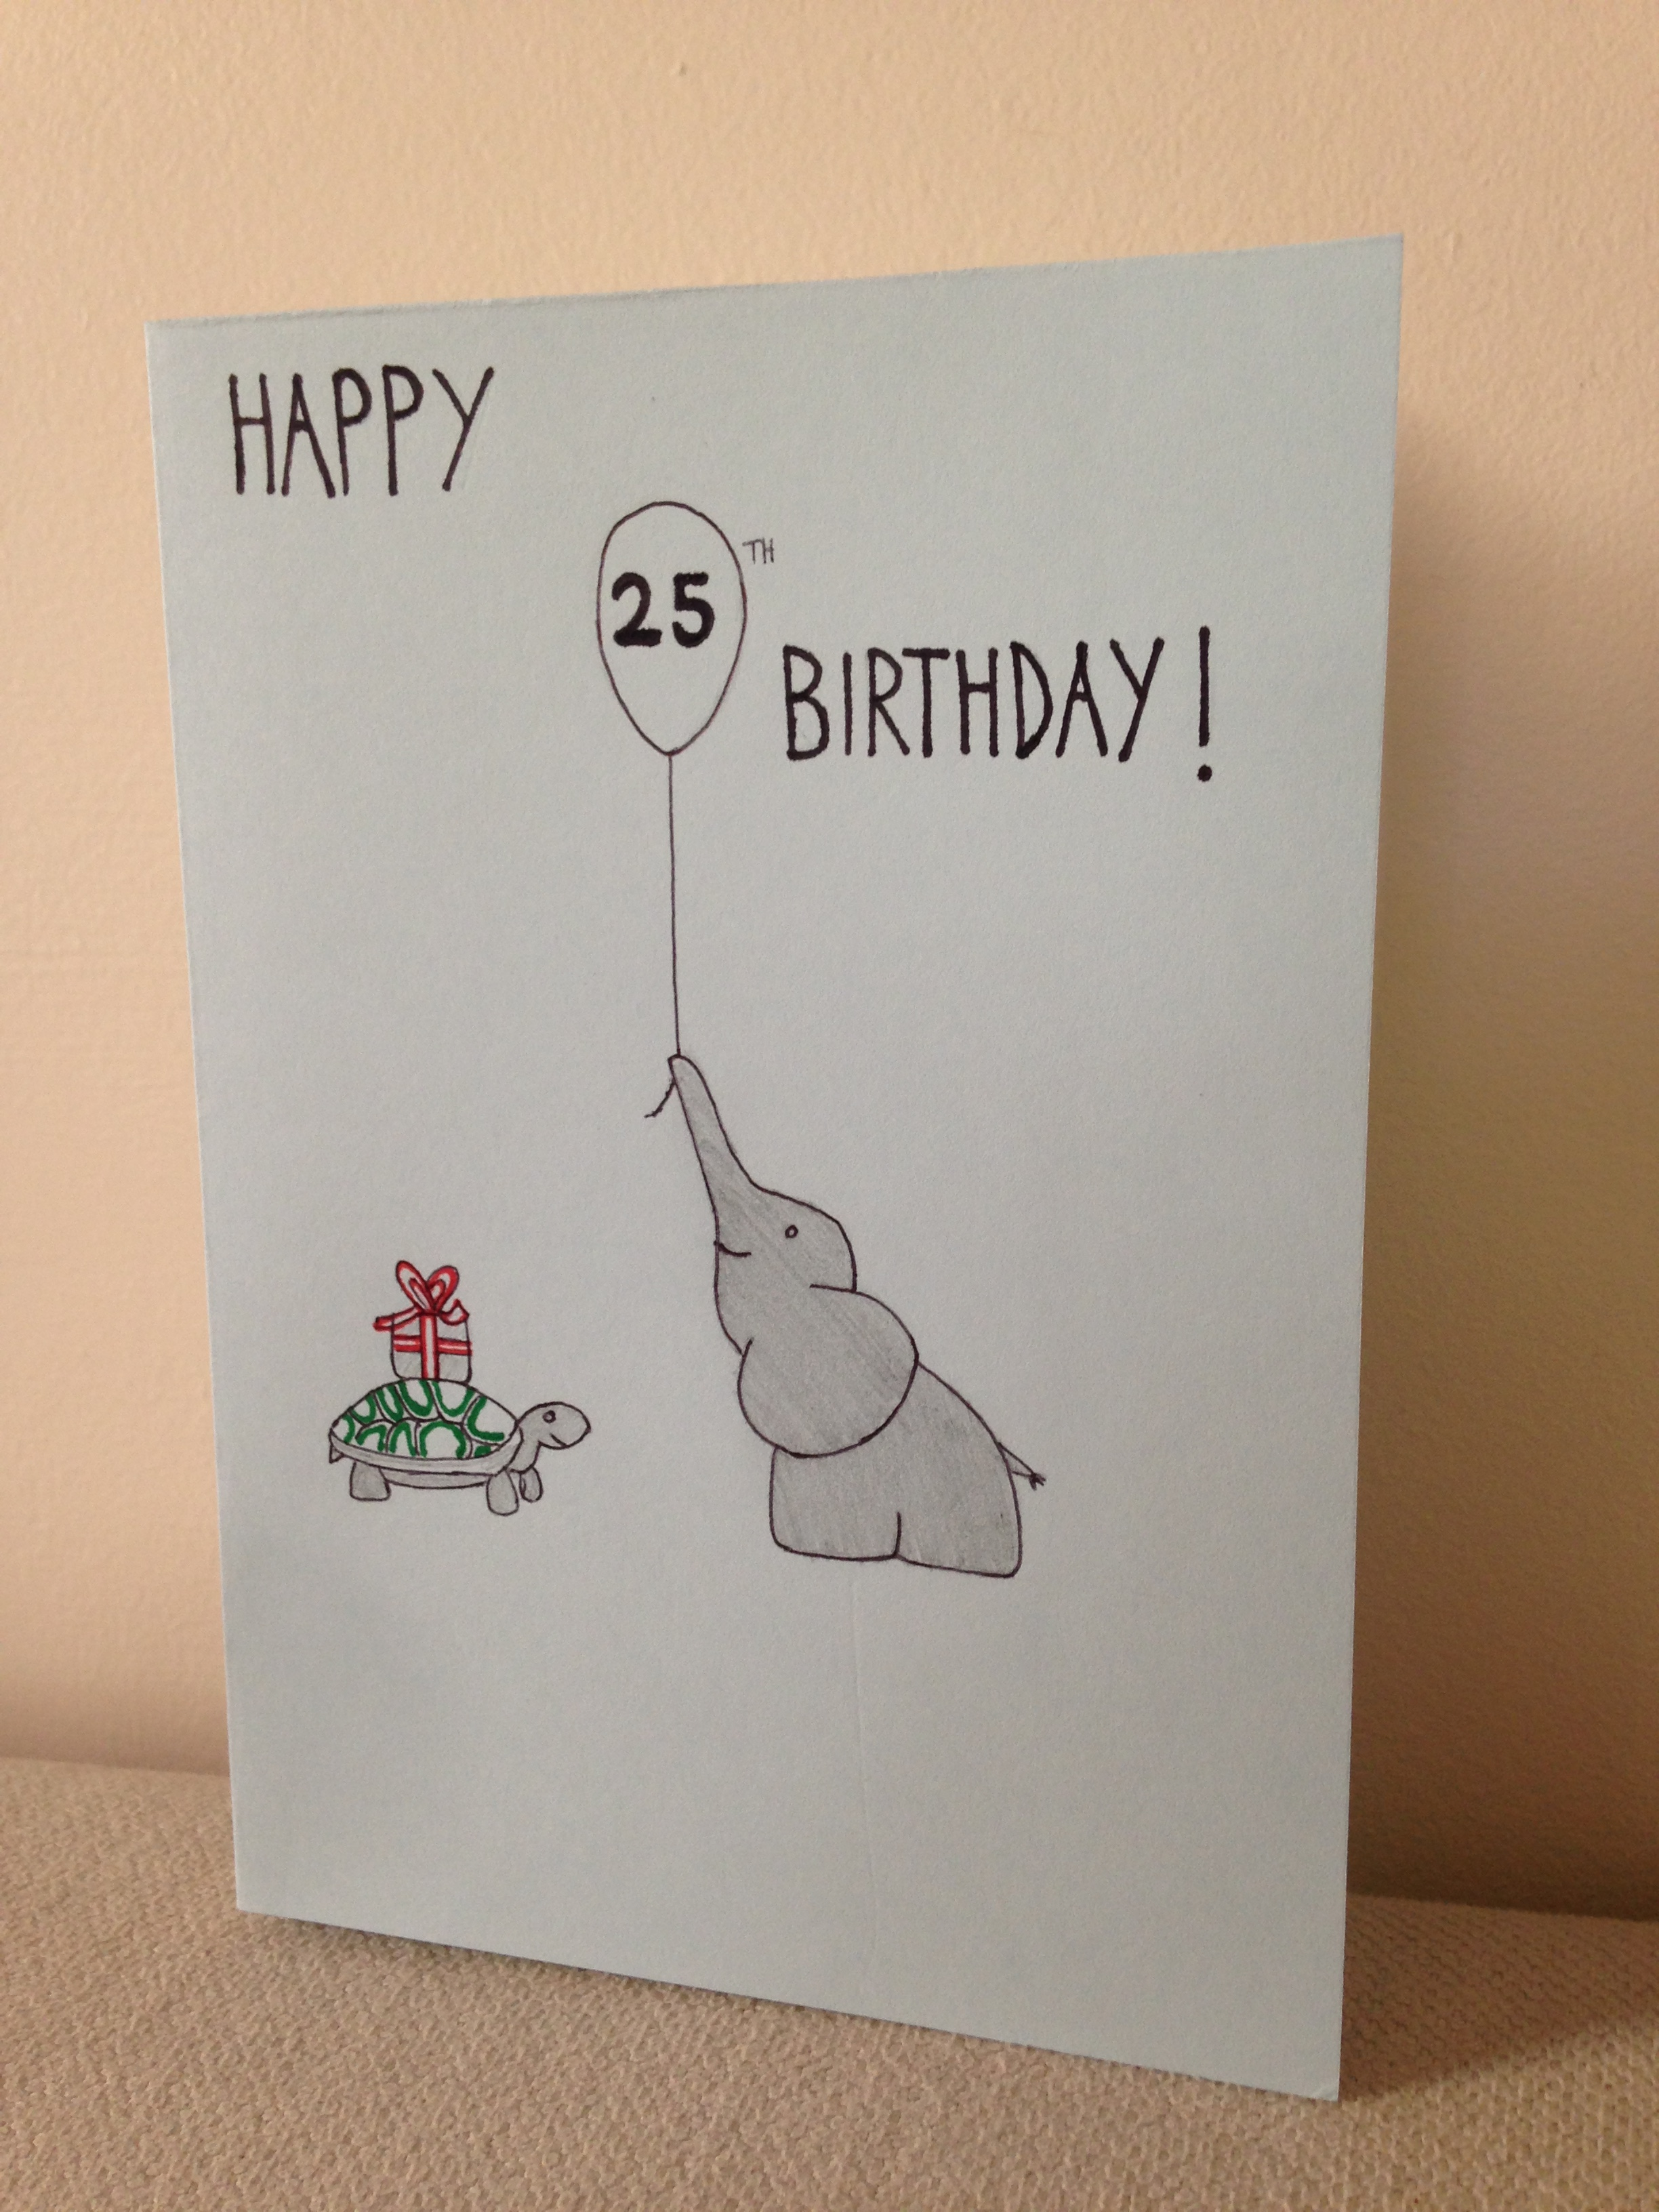 birthday card designs to draw ; Birthday-Drawing-Cards-Awesome-What-To-Draw-On-A-Birthday-Card